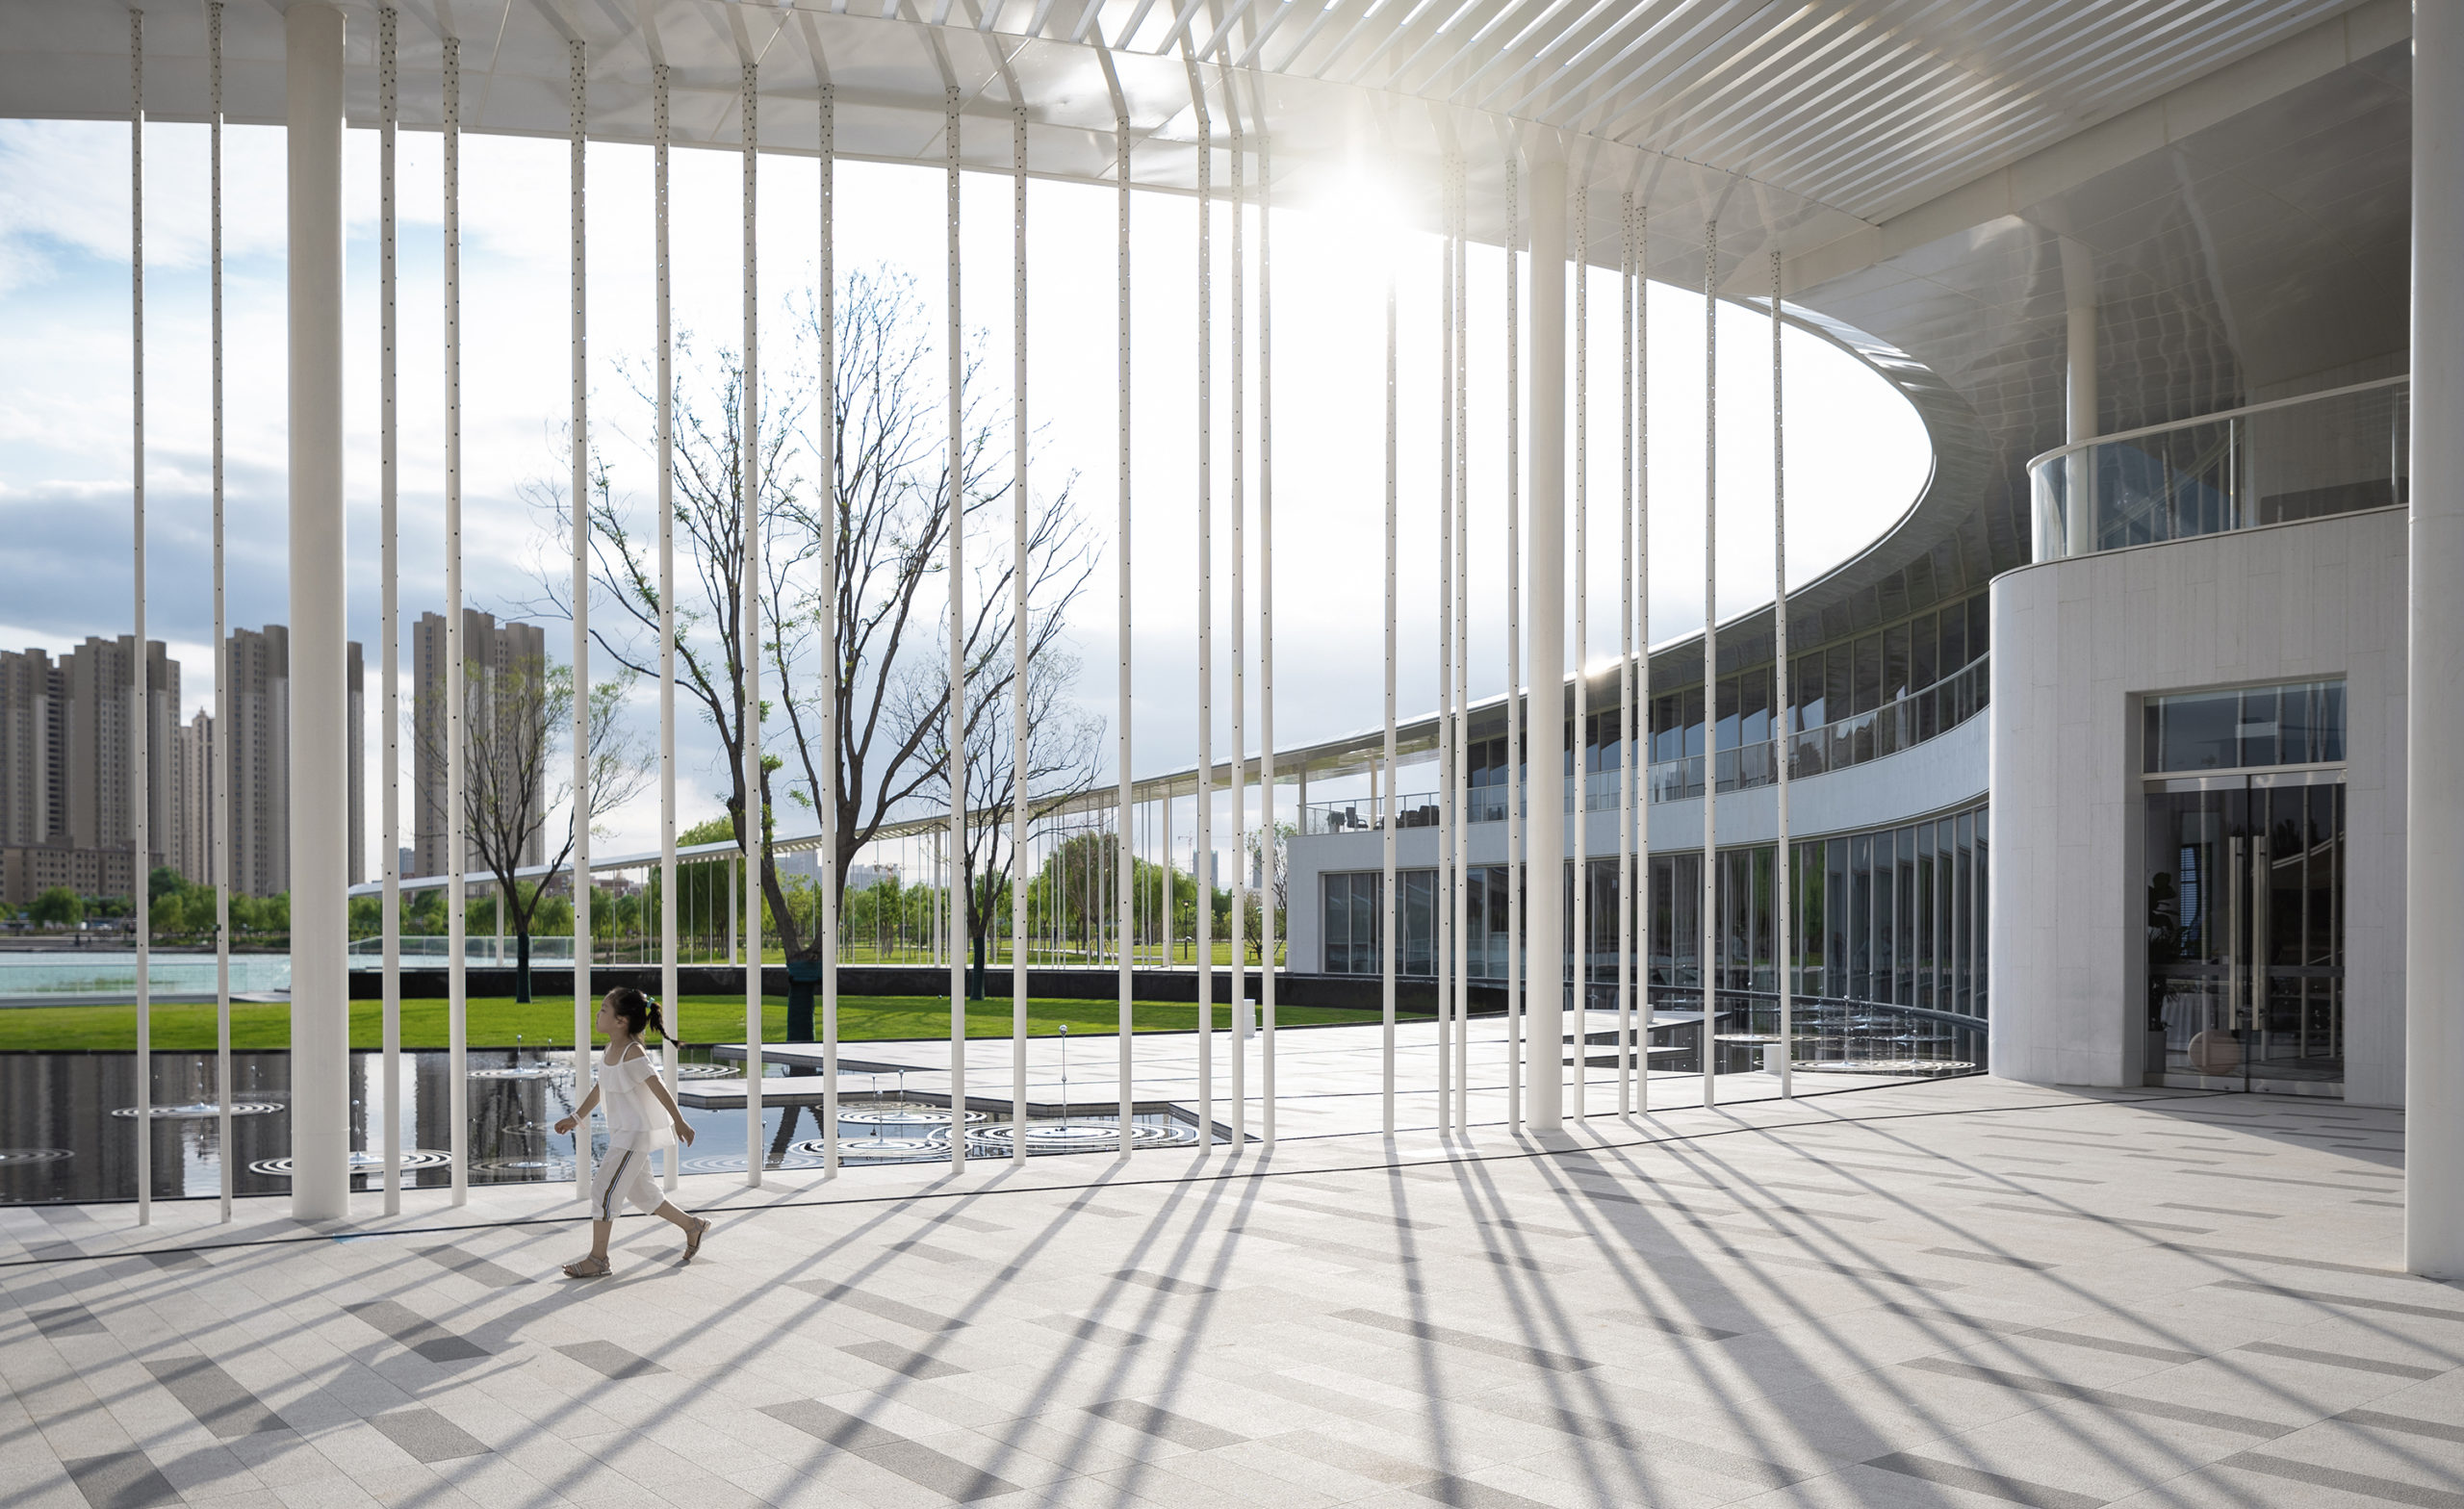 Yinchuan Sunac City Exhibition Center by Arch-Age-Design(AAD), Yinchuan, China